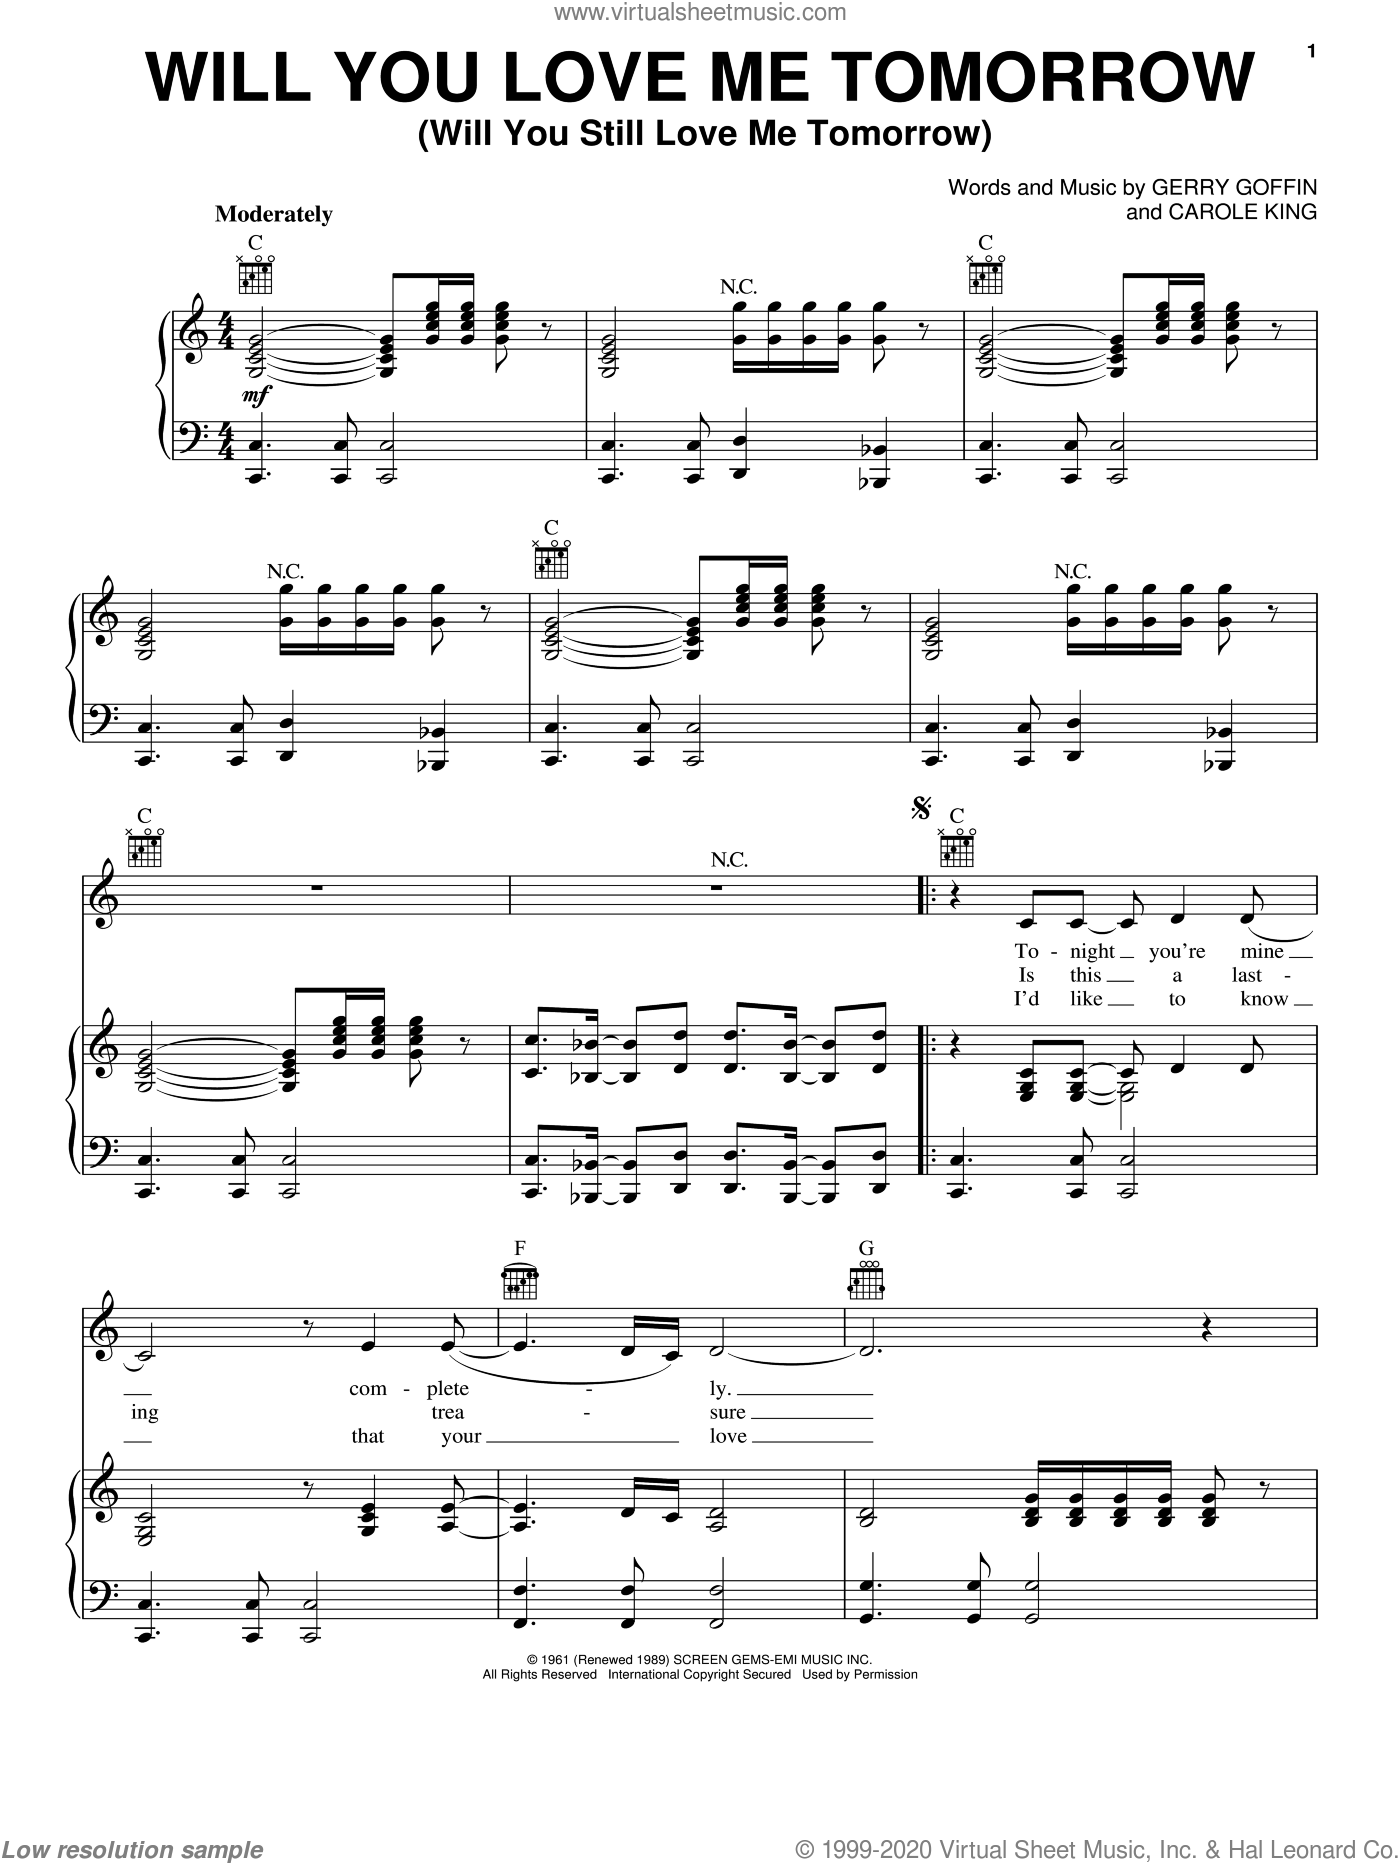 Will You Love Me Tomorrow (Will You Still Love Me Tomorrow) sheet music for voice, piano or guitar by Amy Winehouse, Carole King and Gerry Goffin, intermediate